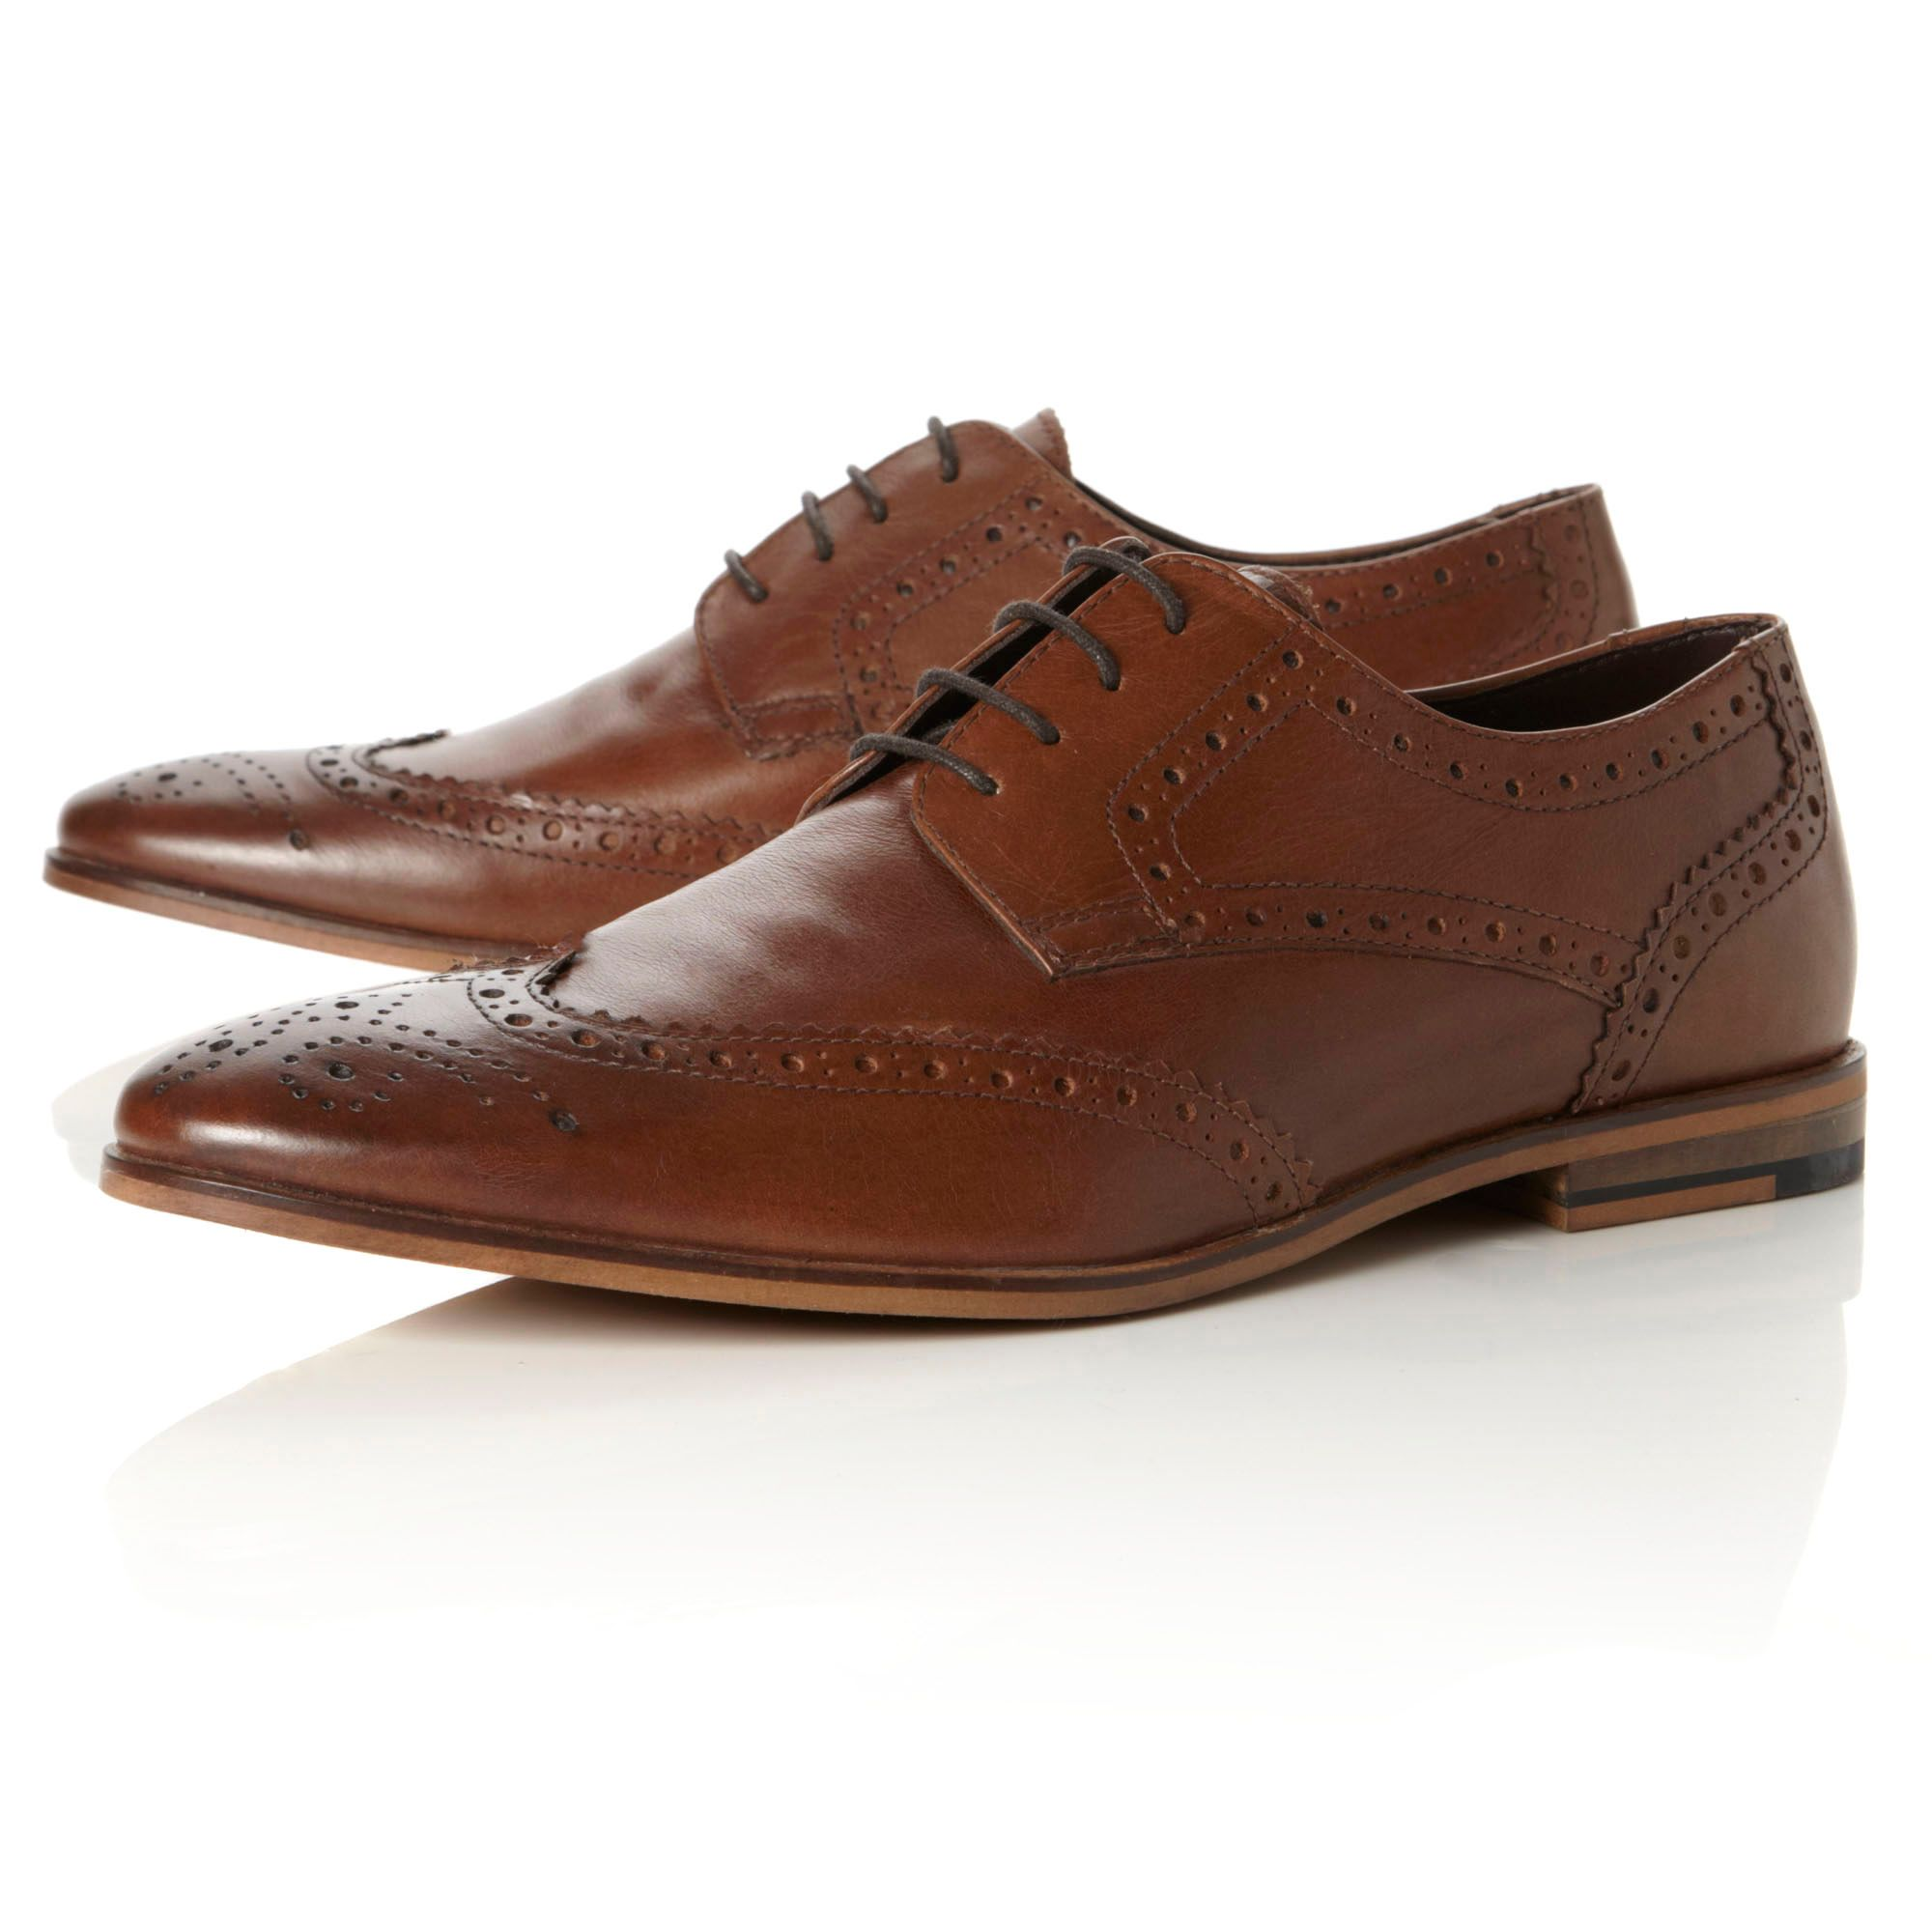 Brompton casual lace up brogues